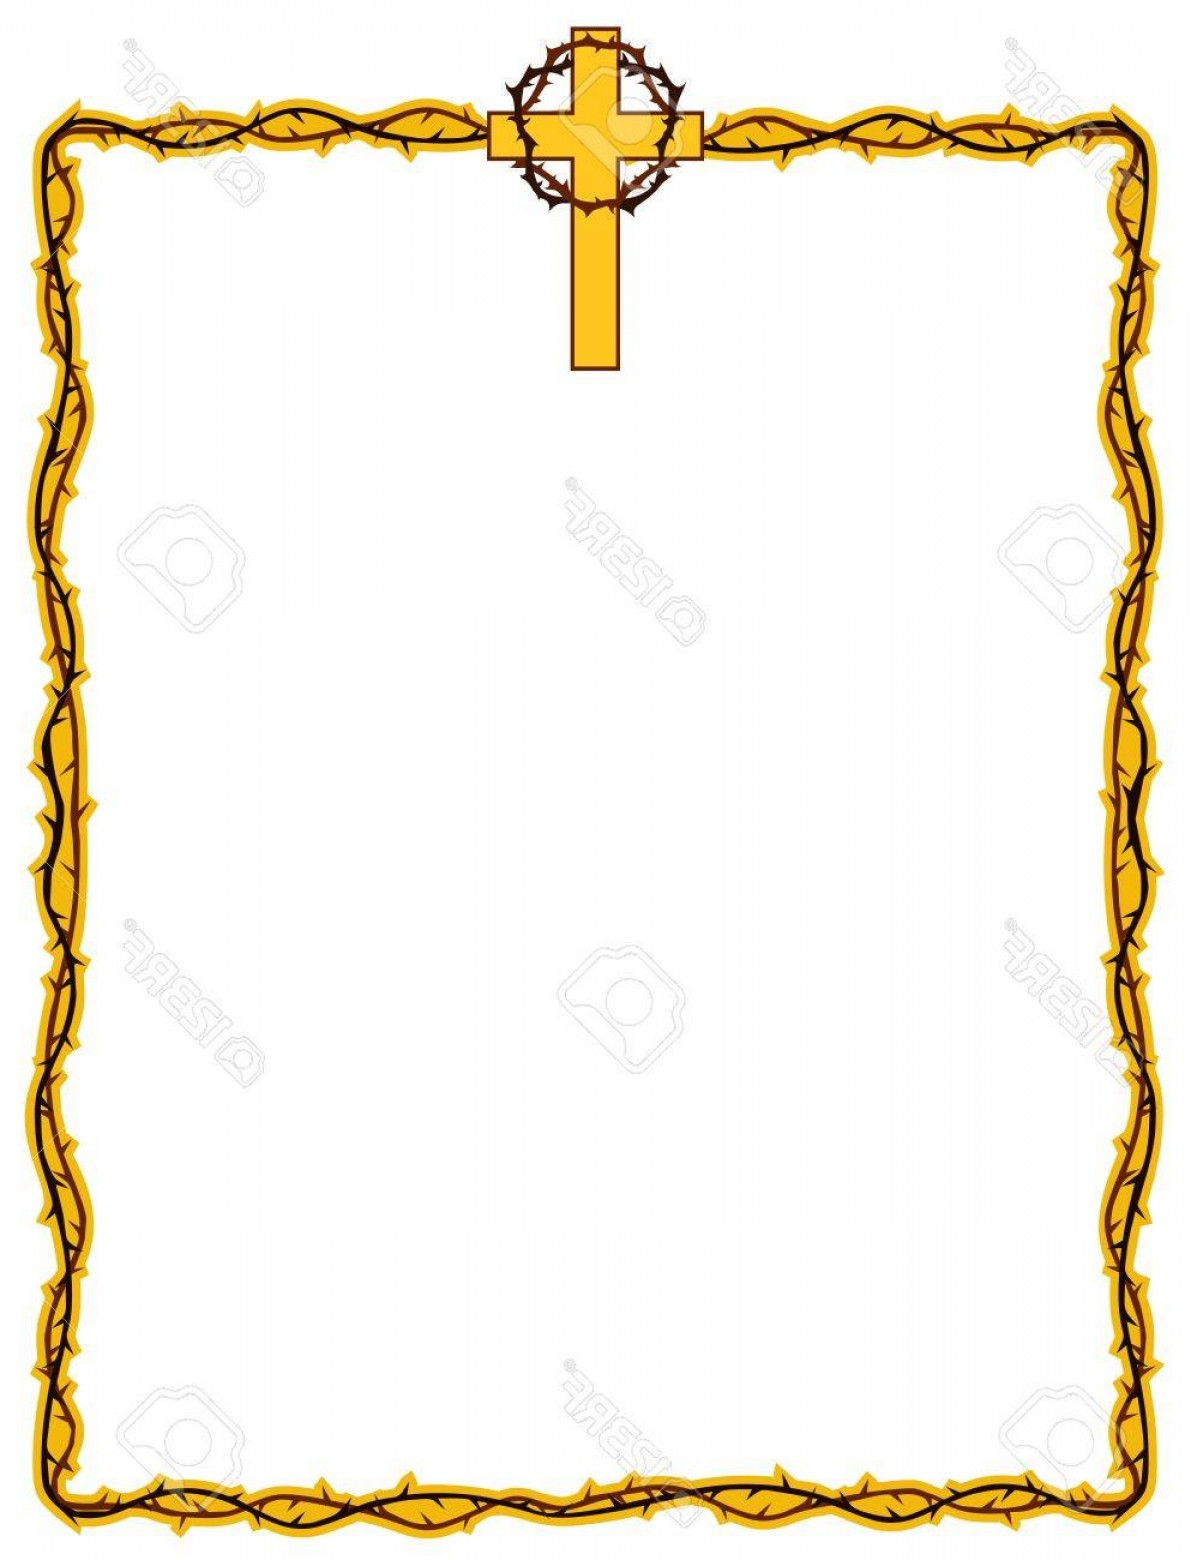 Photostock Vector Christian Frame Design With Cross And.